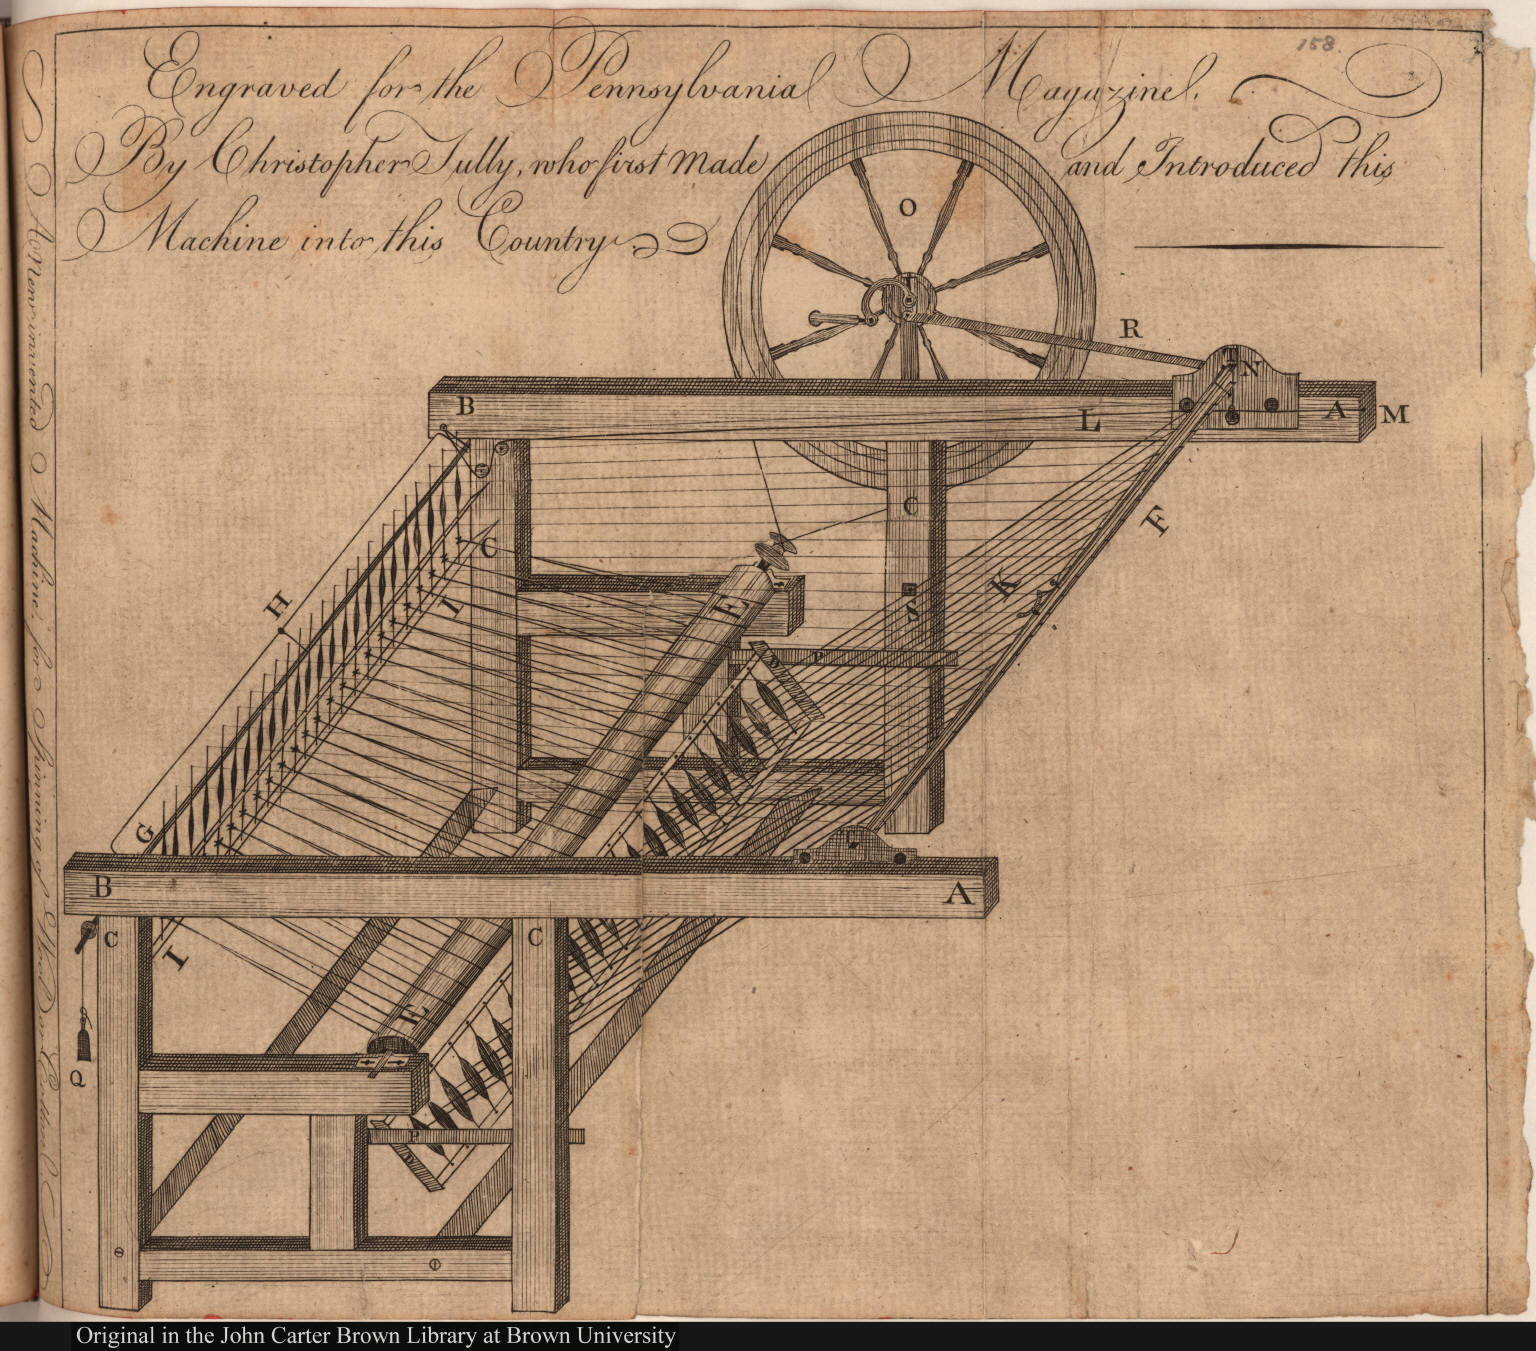 A New invented Machine for Spinning of Wool or Cotton